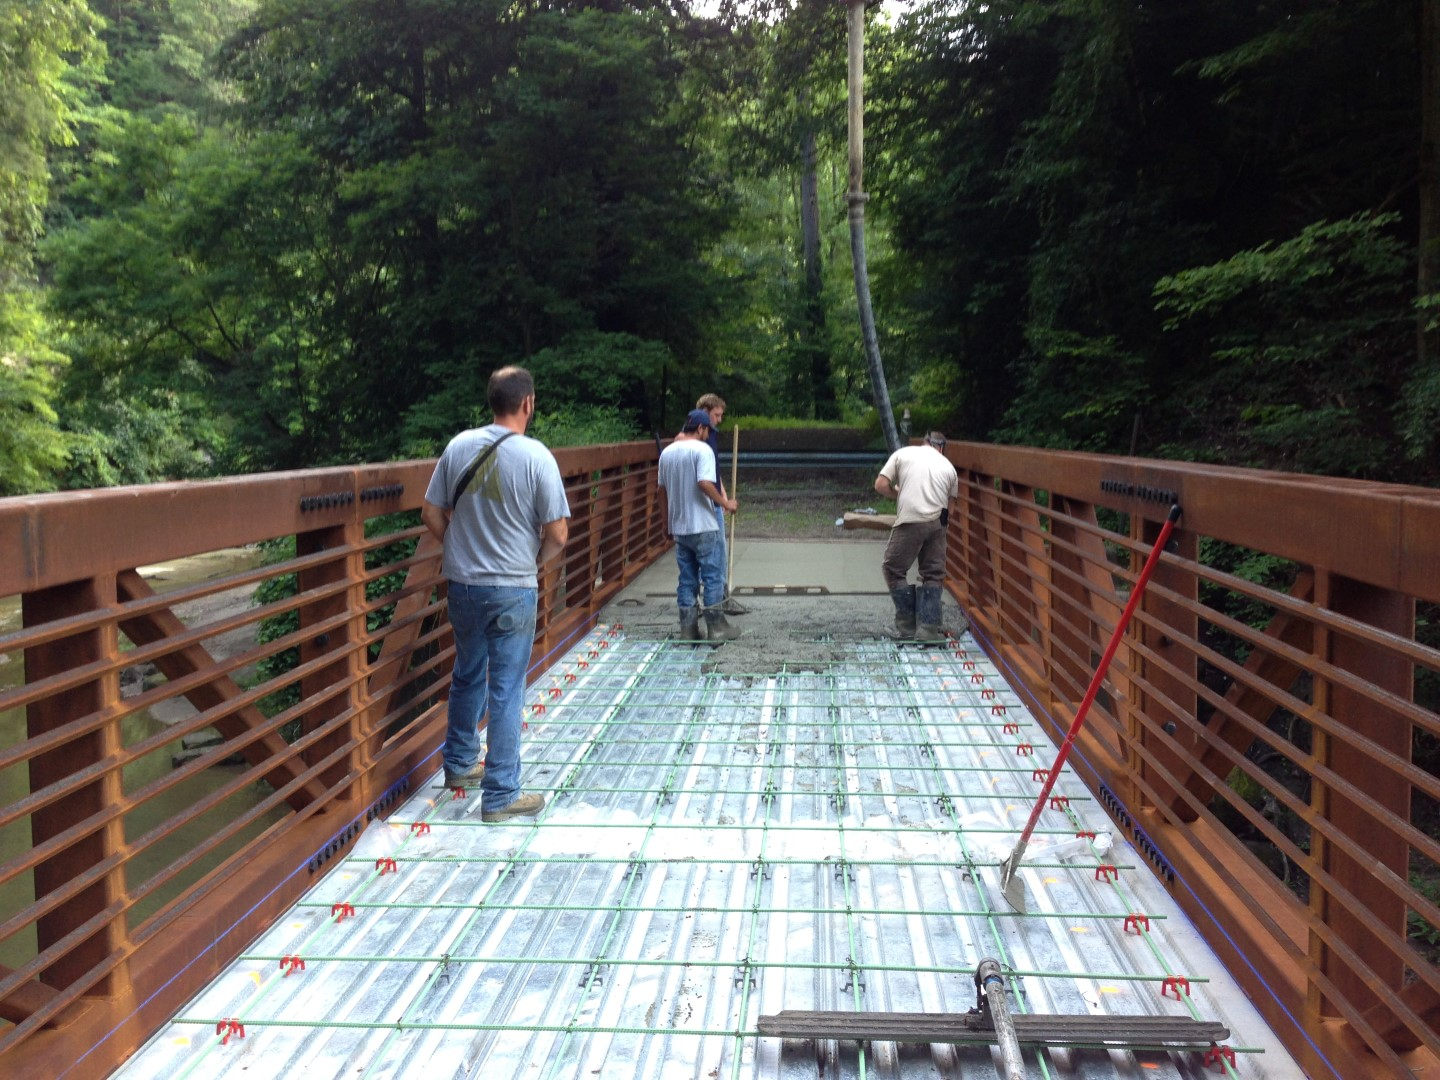 Commercial Concrete placement  Bridge Chardon ohio 44024